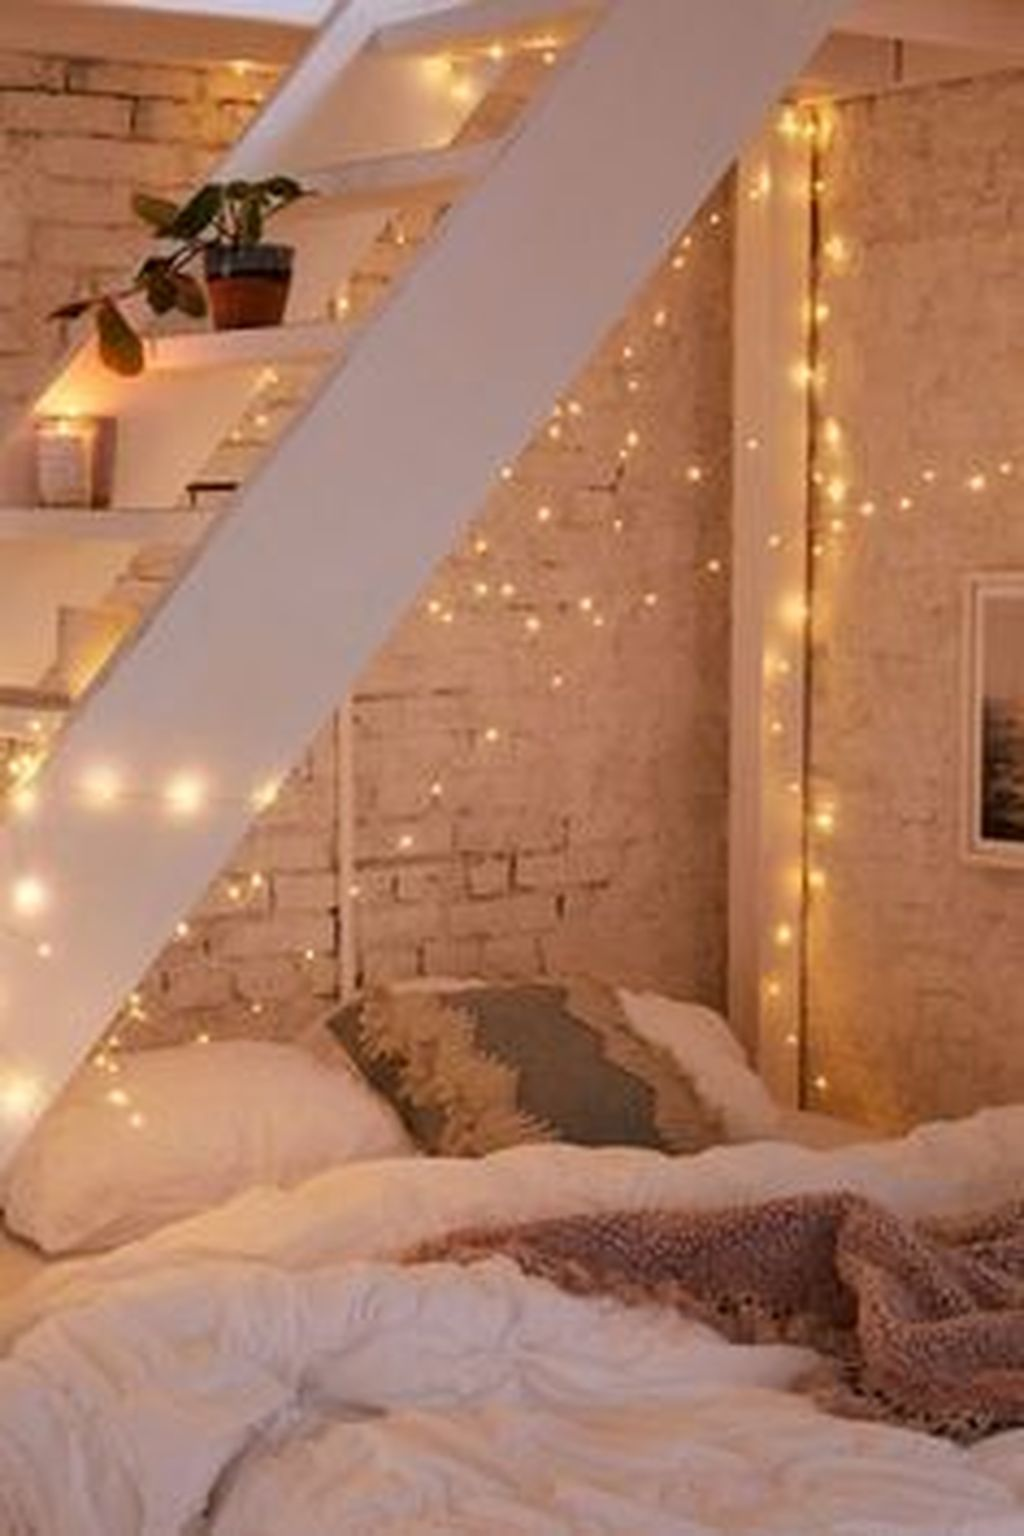 Stunning Christmas Lights Decoration Ideas In The Bedroom 07